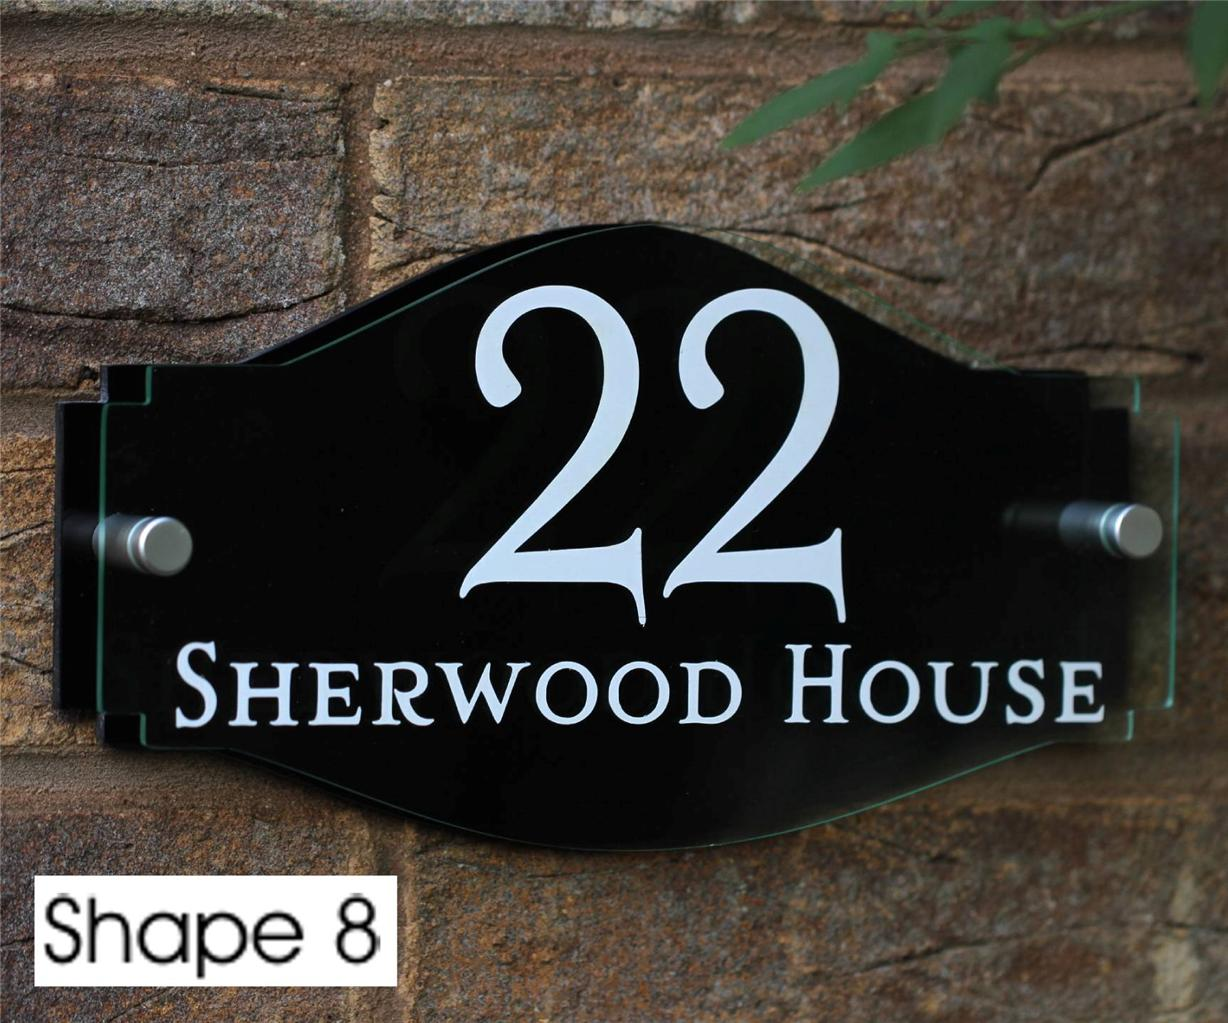 Modern House Sign Door Number Street Name ddress Plaque Glass ... - ^